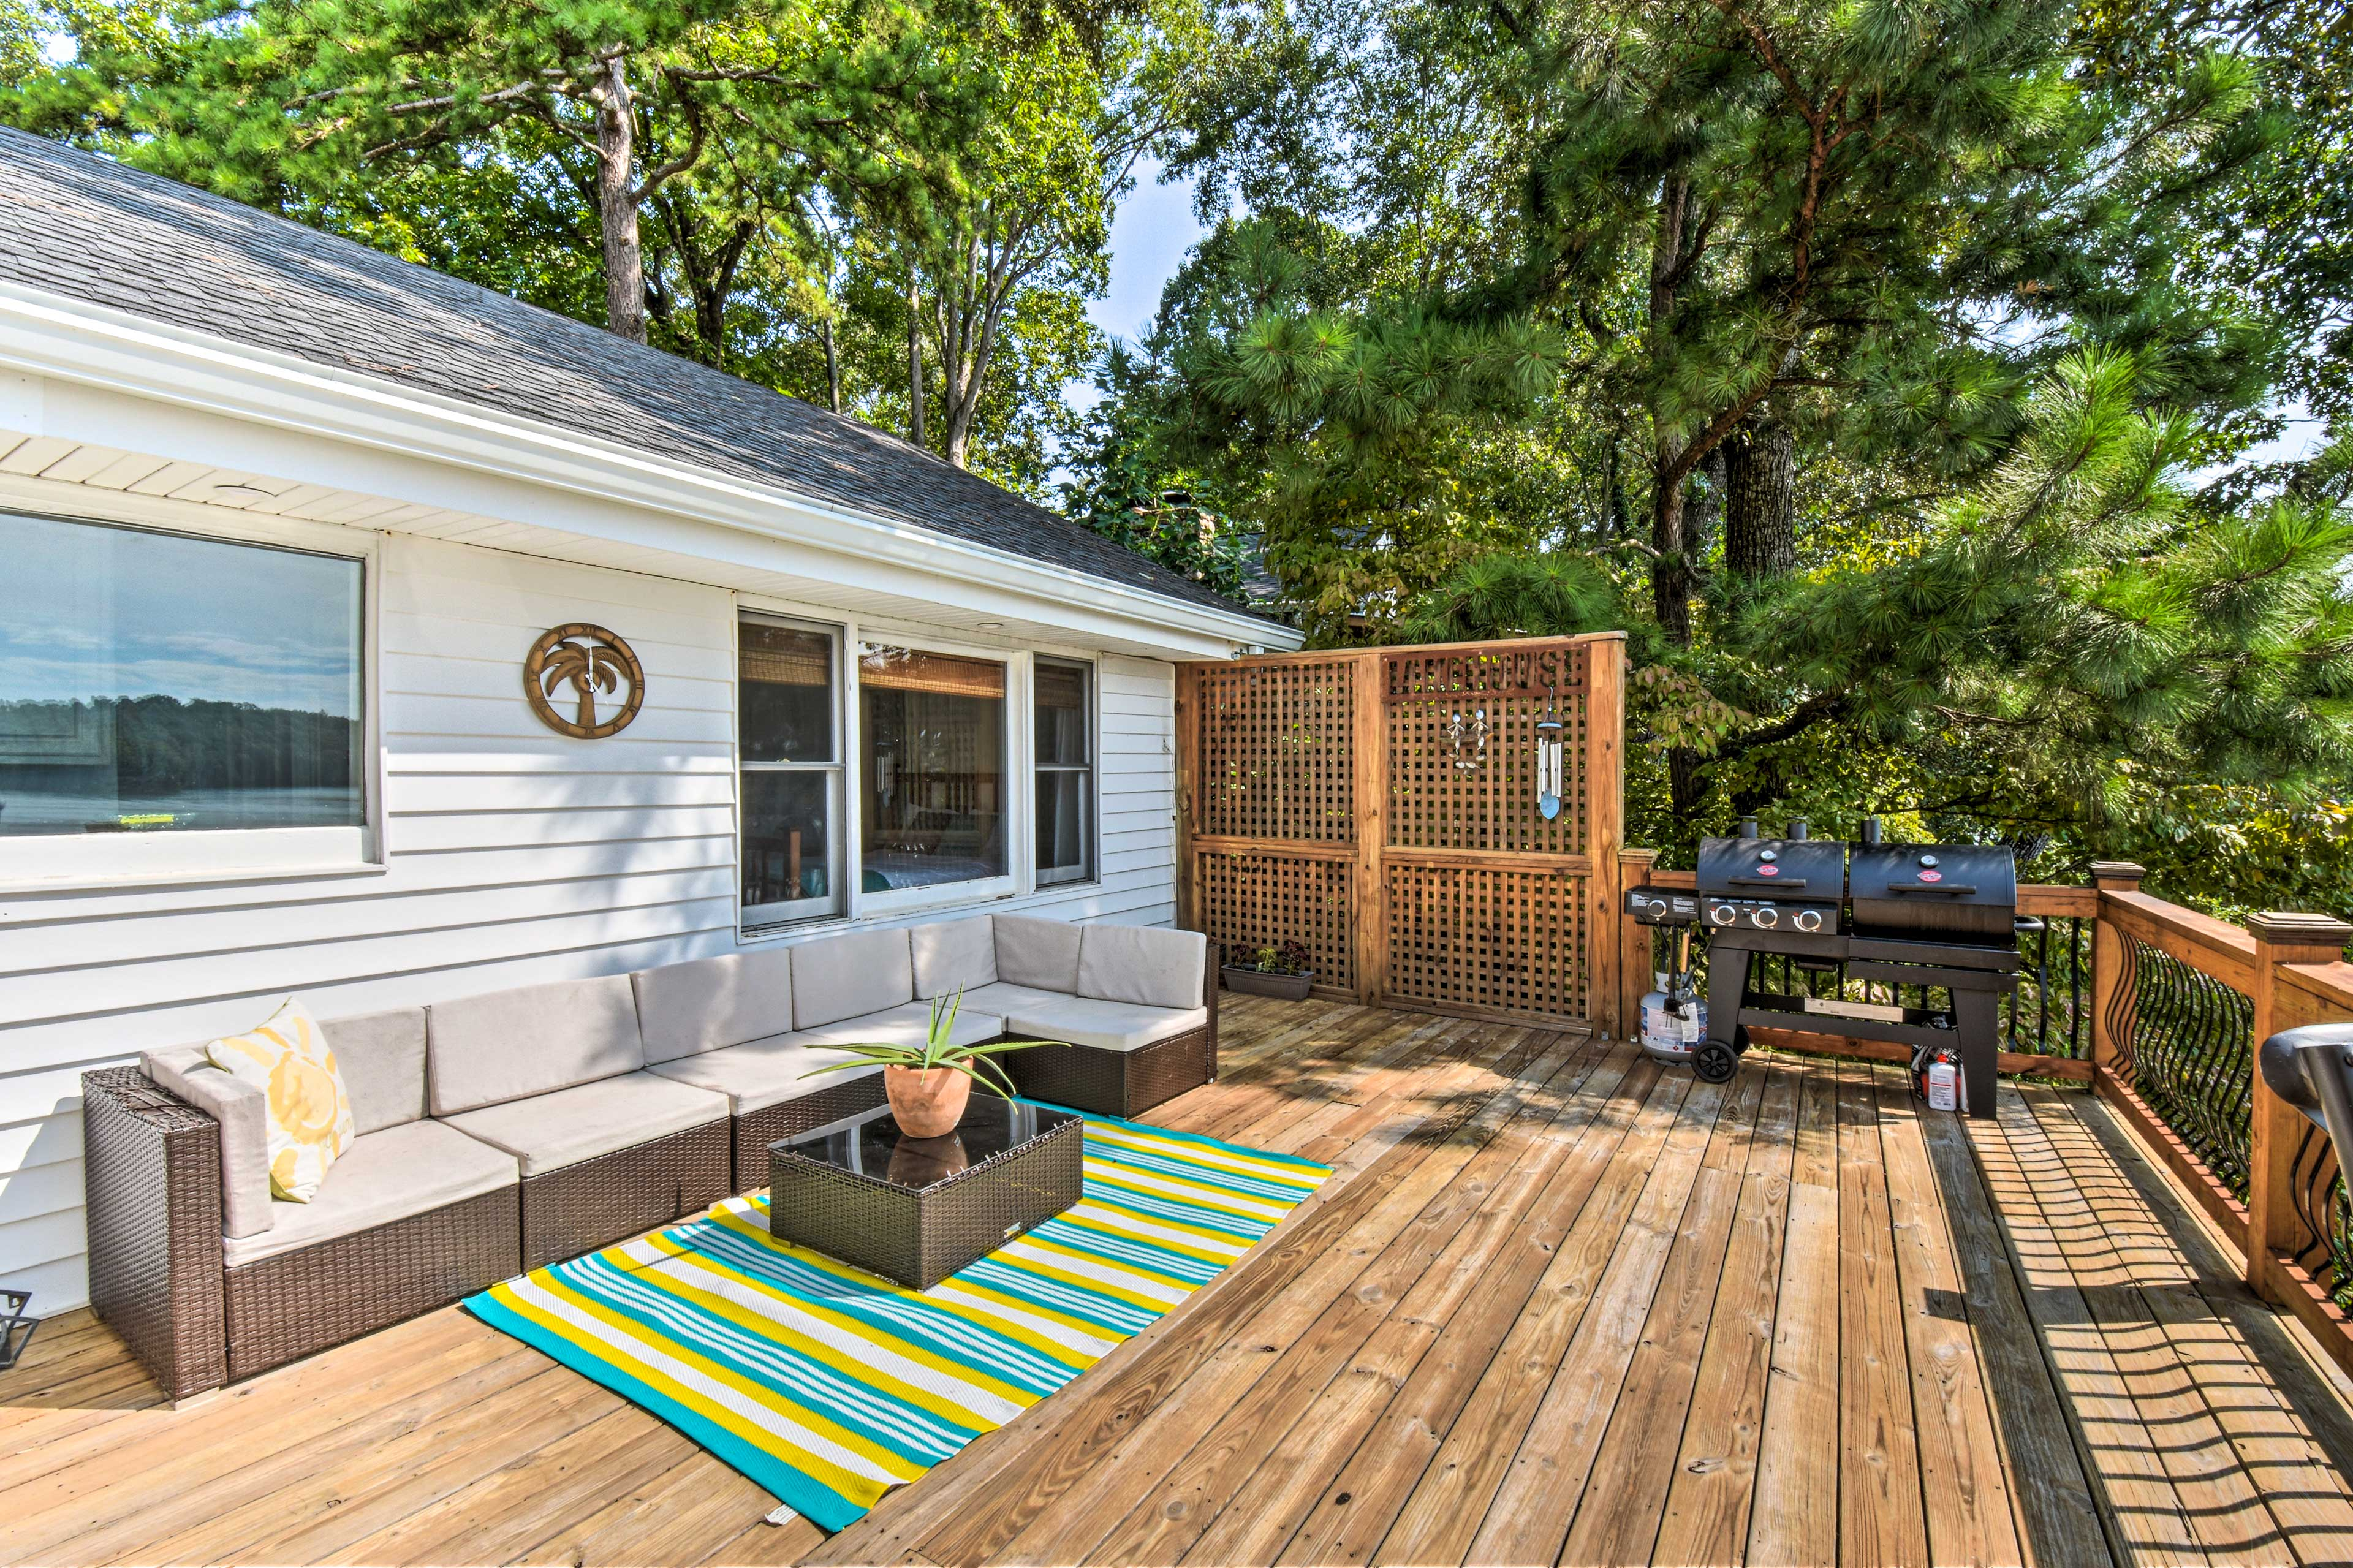 Property Exterior | Gas/Charcoal Grill